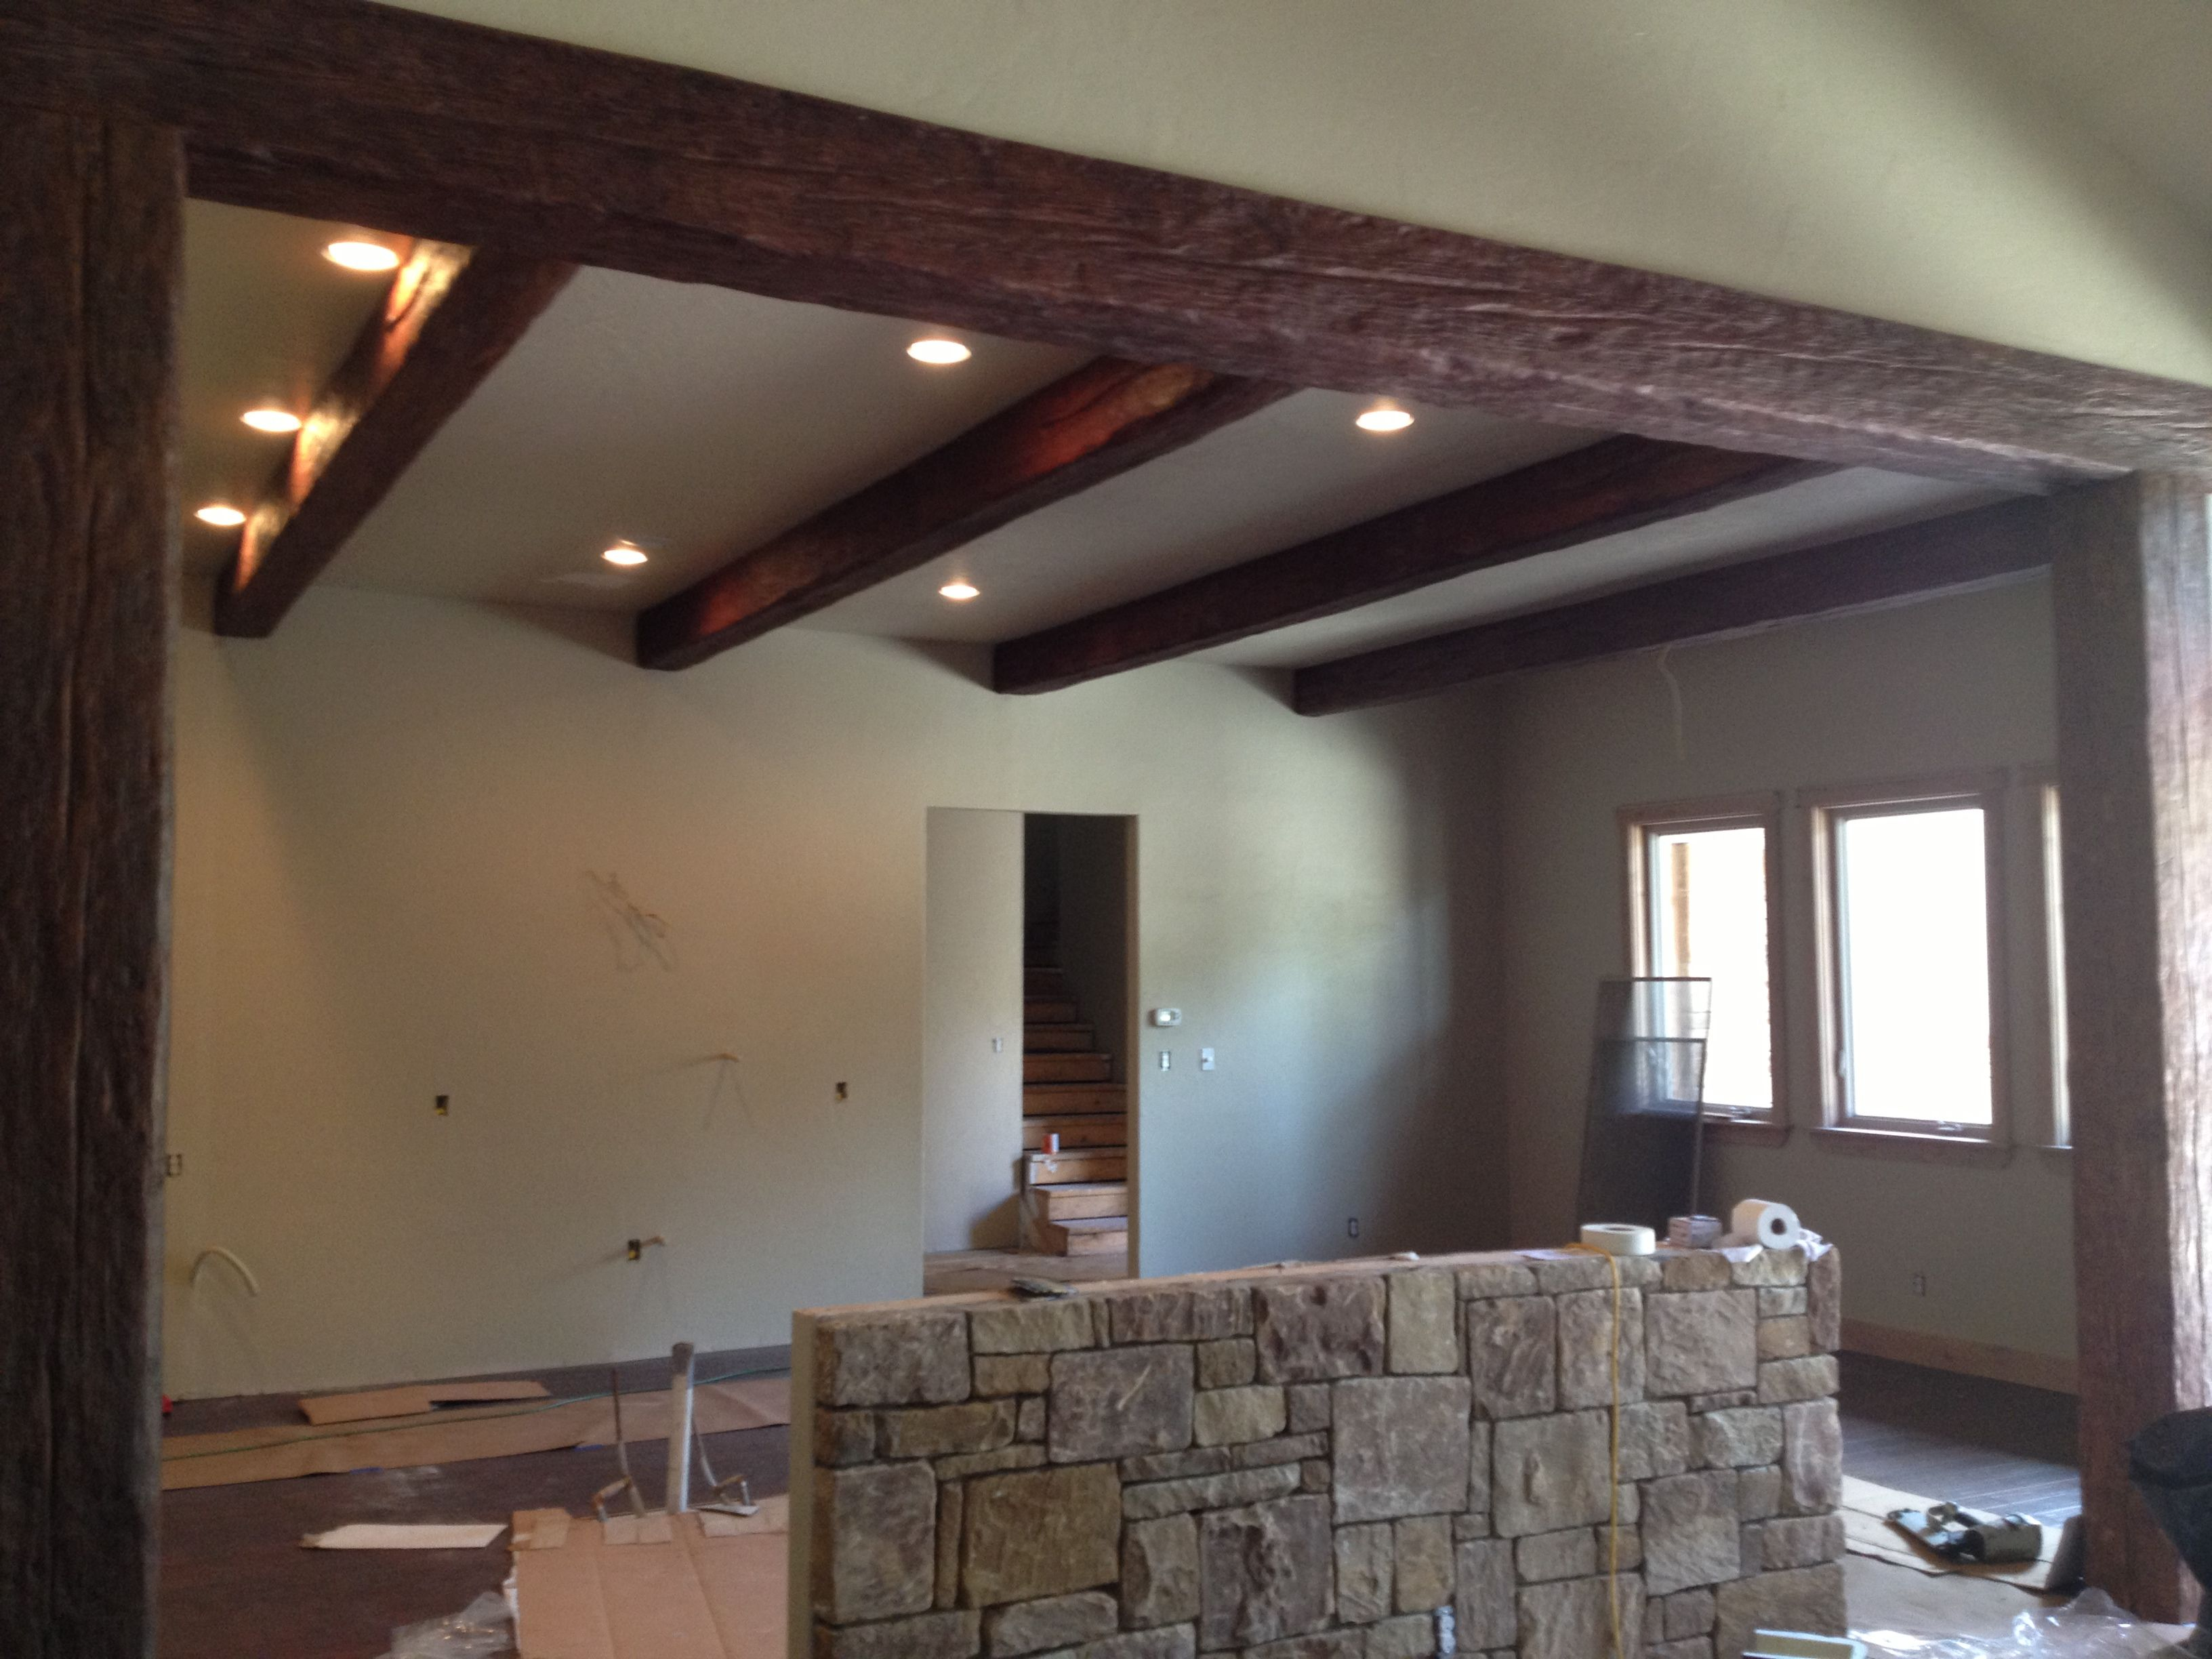 Faux wood beams for ceiling design ideas old world for Fake wood beams for ceiling